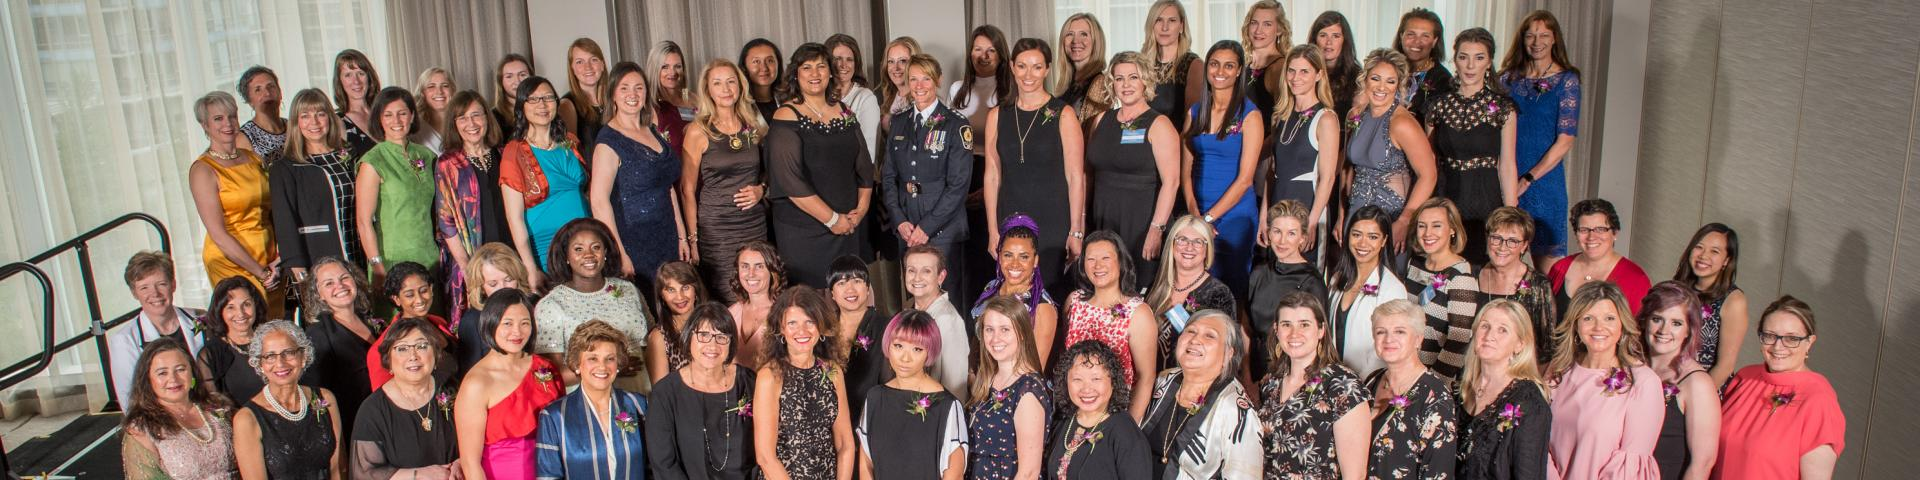 Women of Distinction Nominees 2018